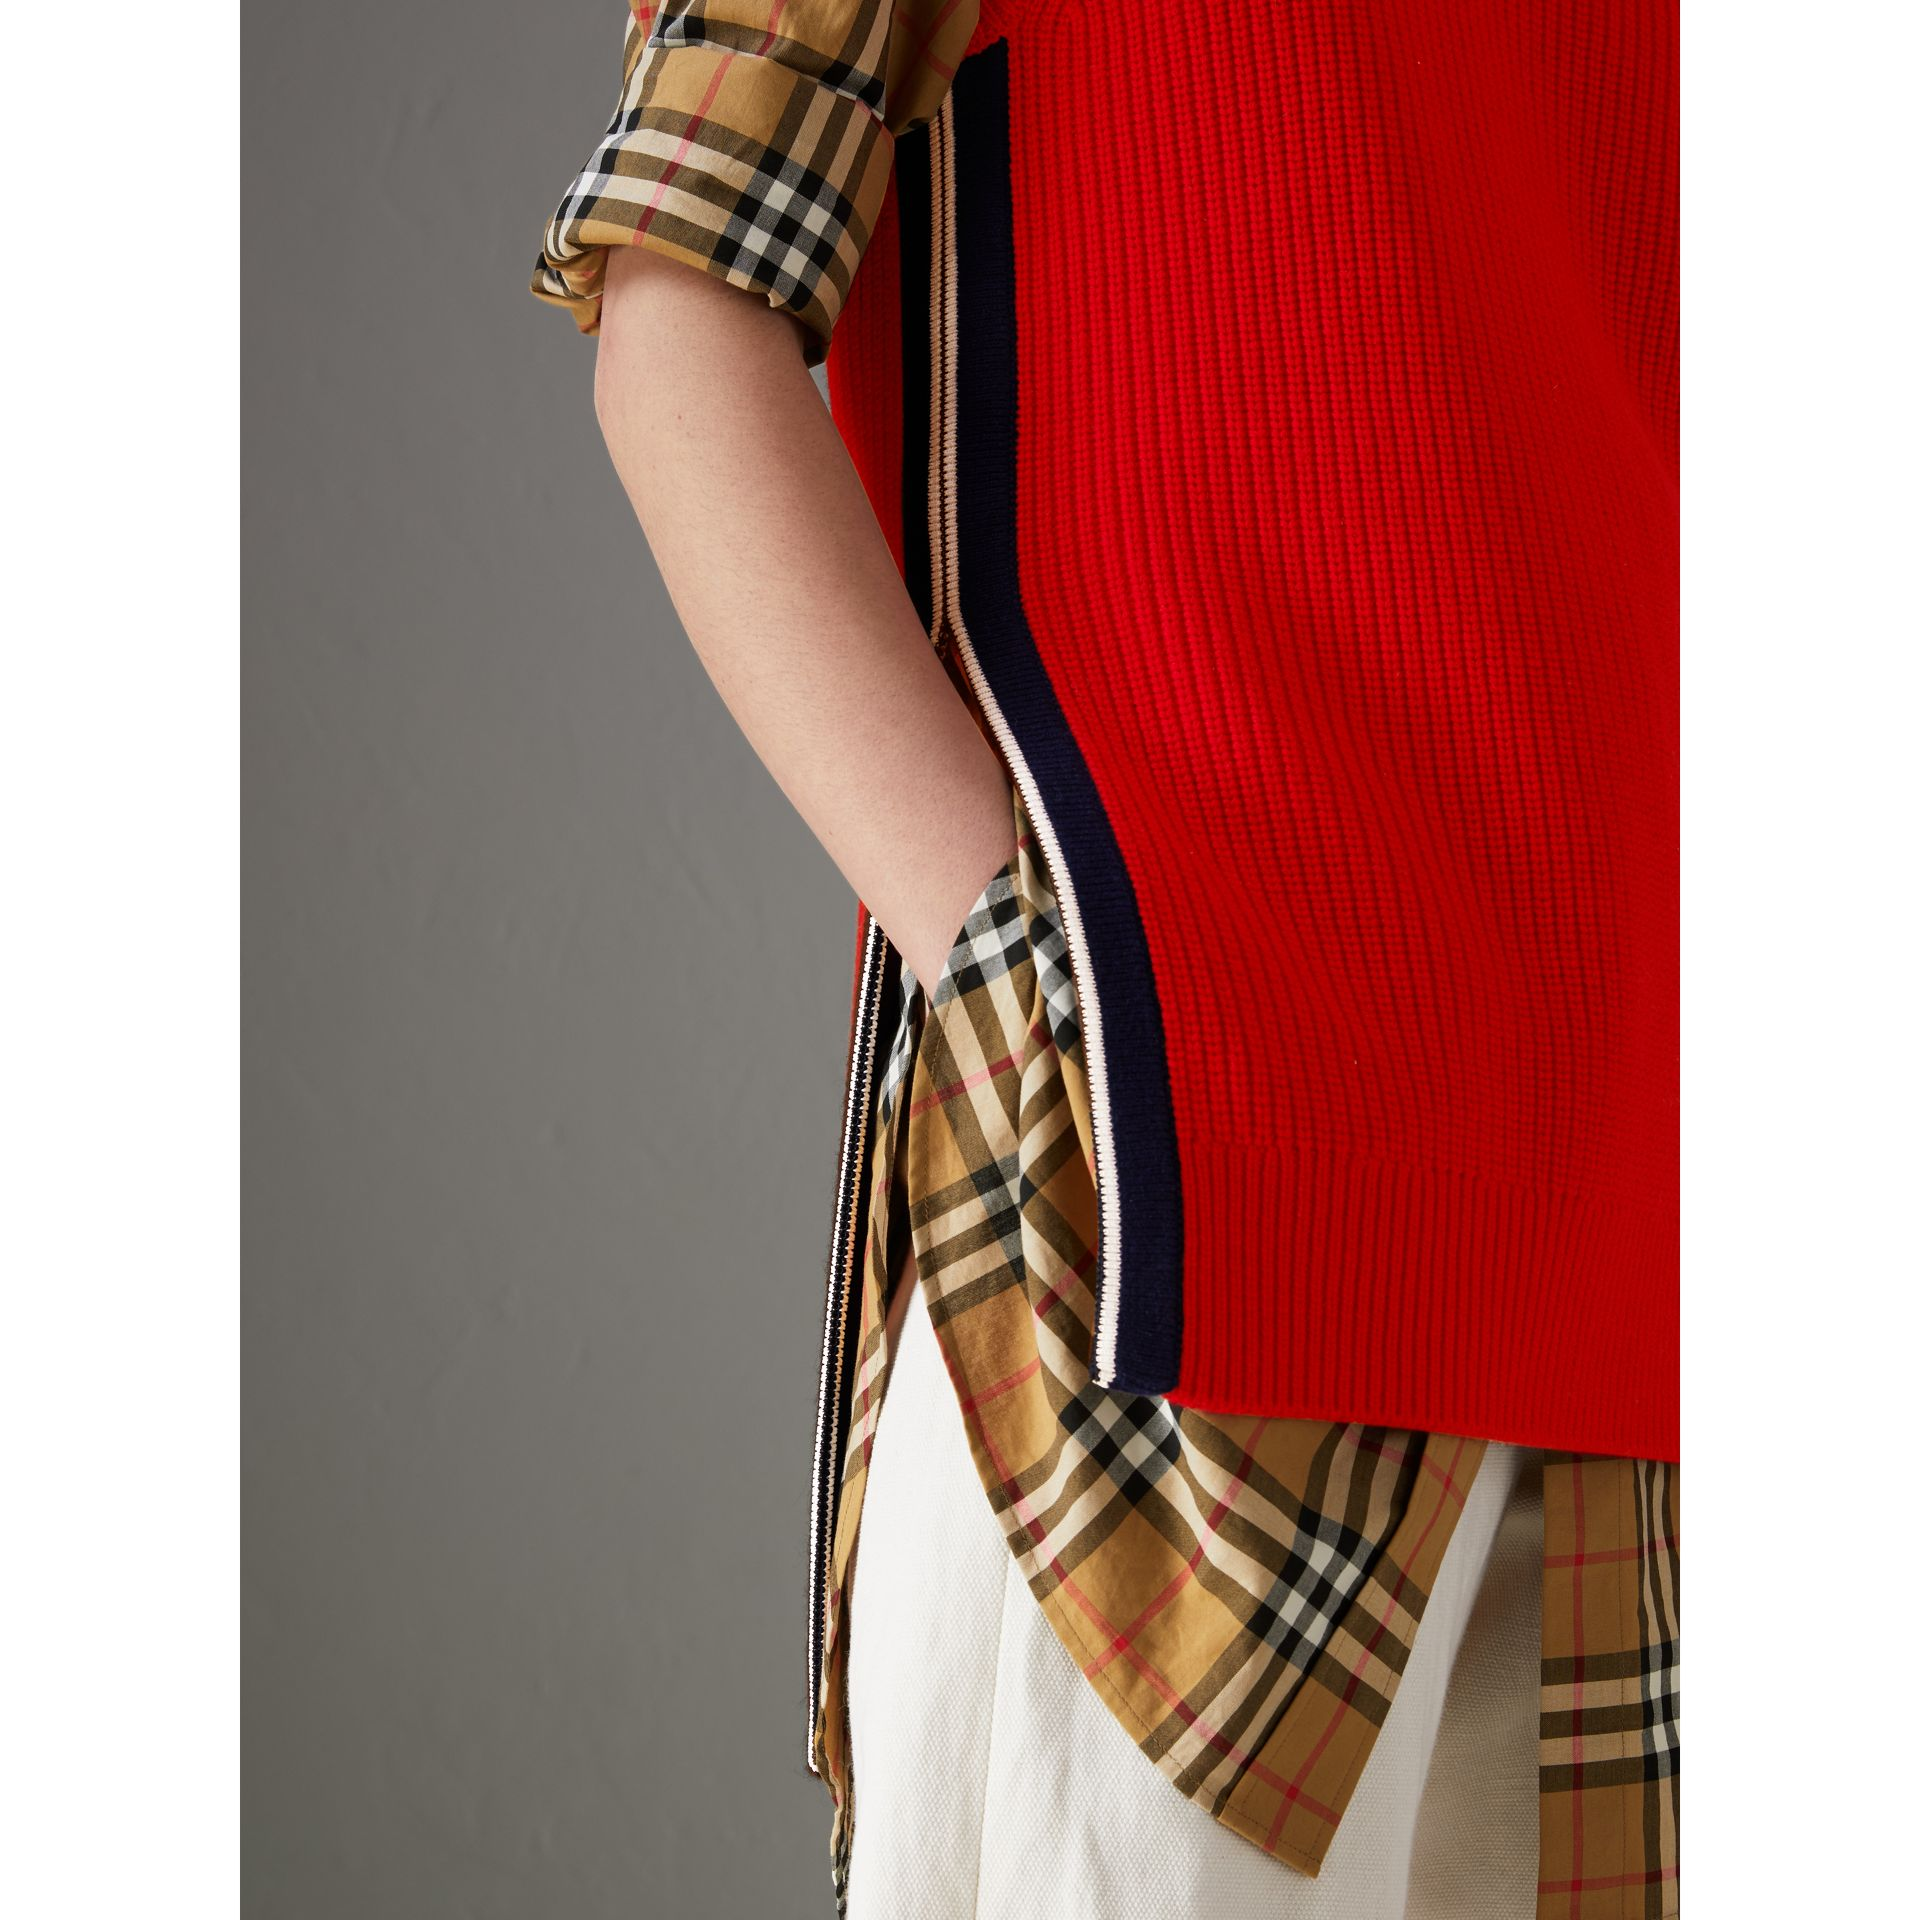 Rib Knit Wool Cashmere Vest in Military Red - Women | Burberry United States - gallery image 1